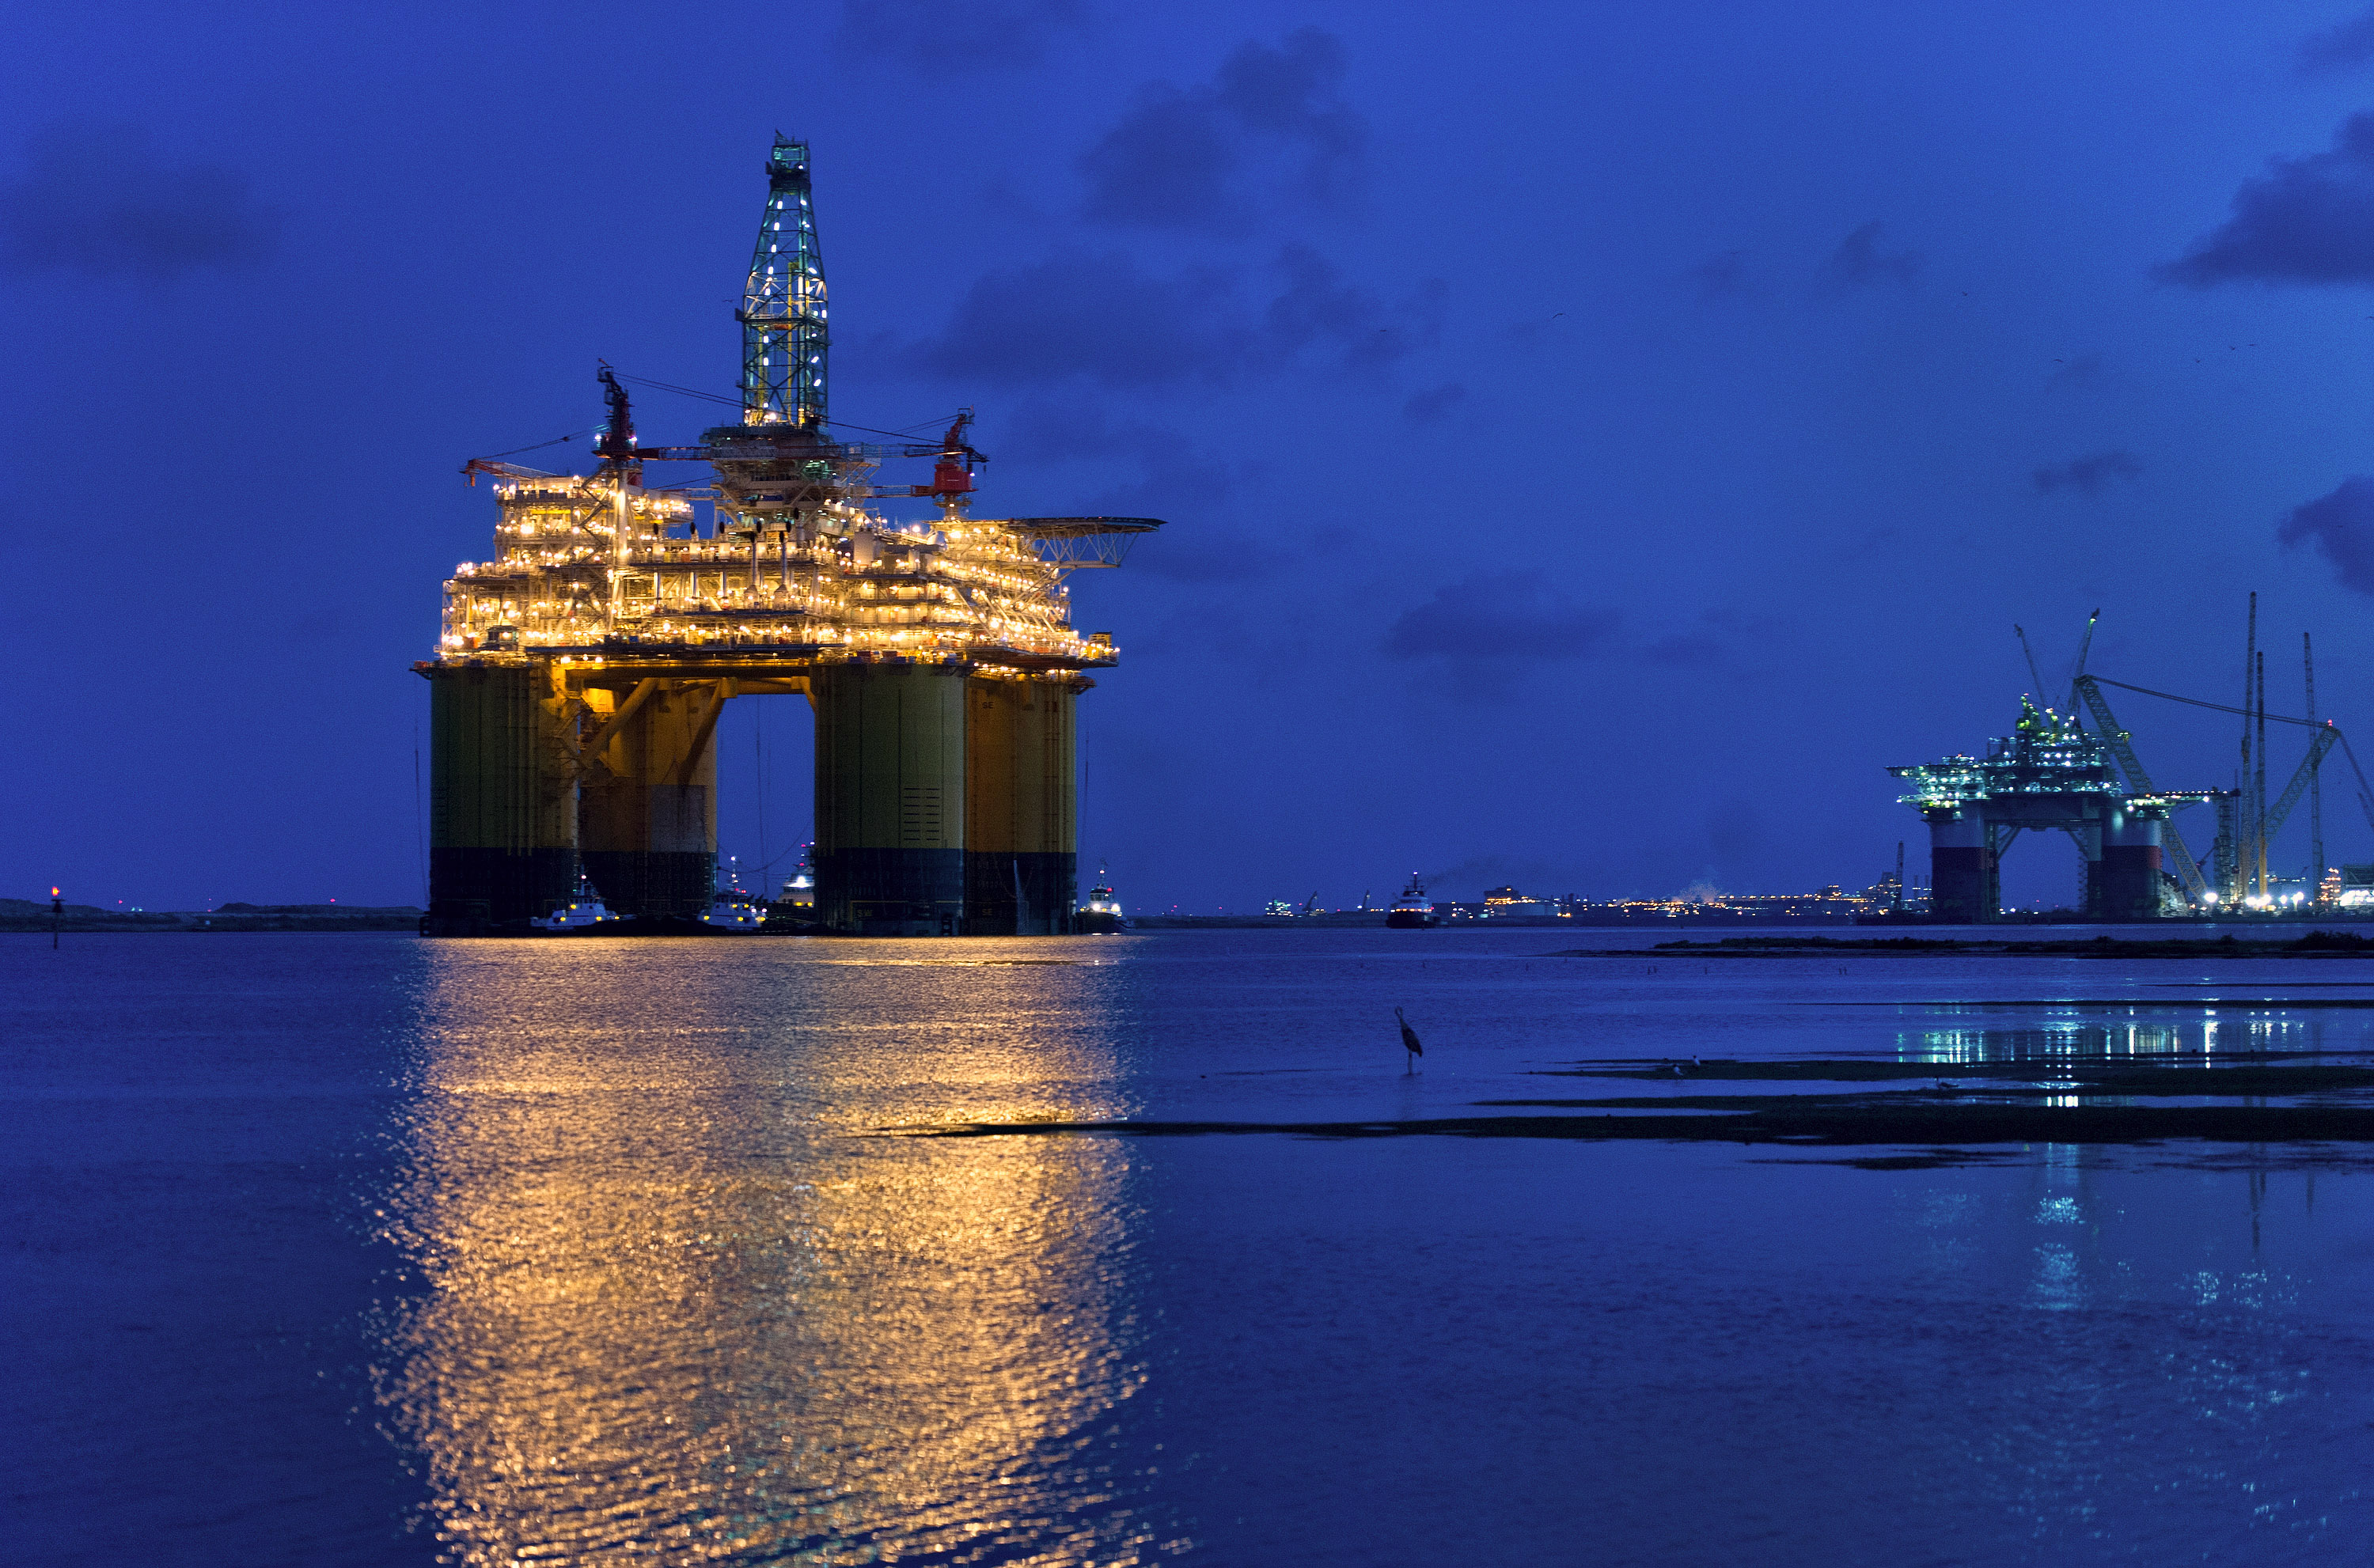 The Shell Olympus Tension Leg Platform Moves To The Gulf Of Mexico